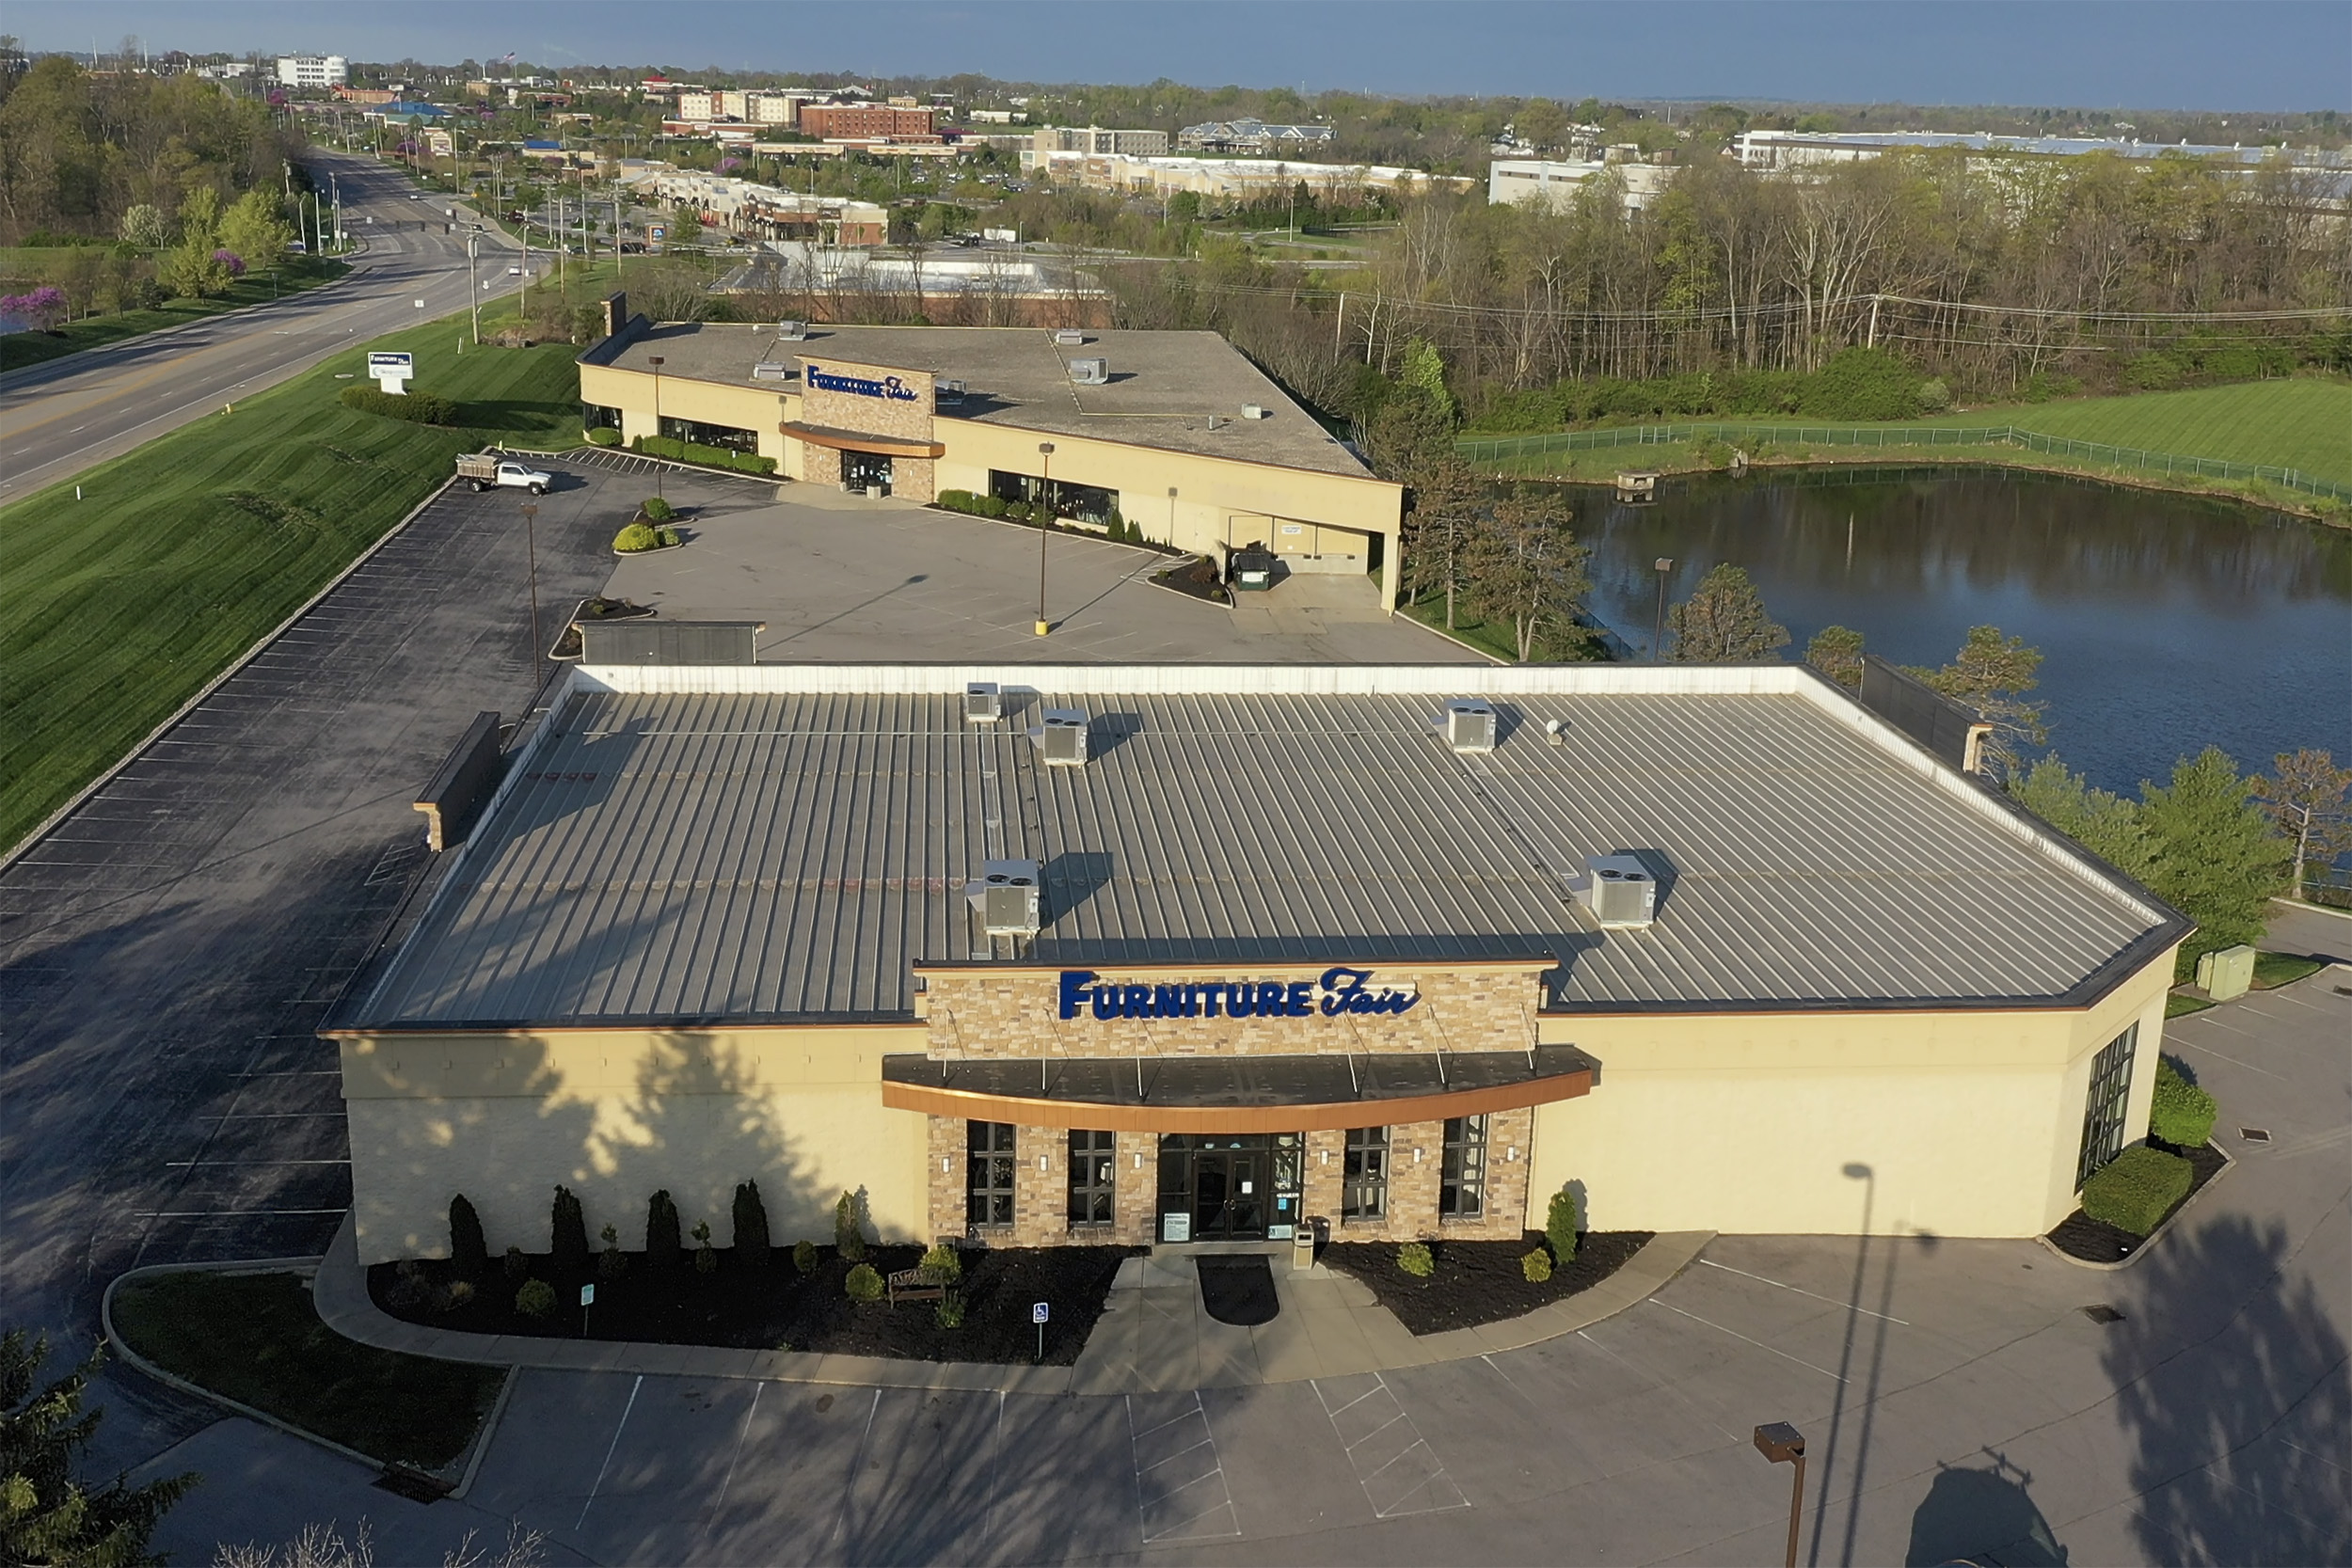 Exterior Drone shot of Furniture Store